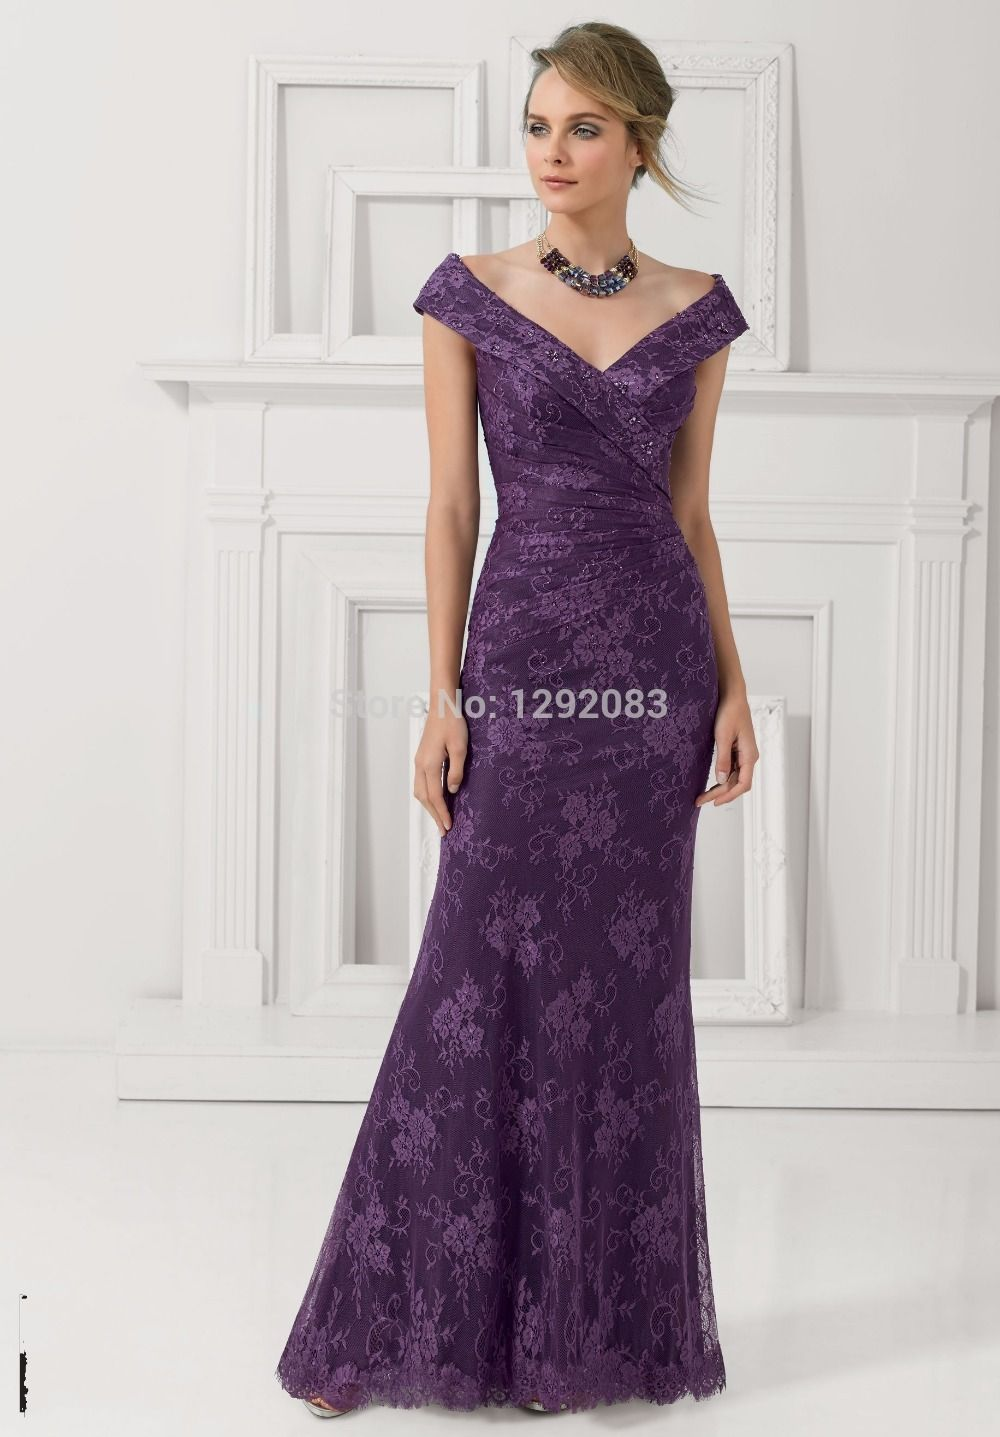 2015-Tall-Eggplant-Lace-Long-Mother-of-the-Bride-Dress-V-Neck-with ...